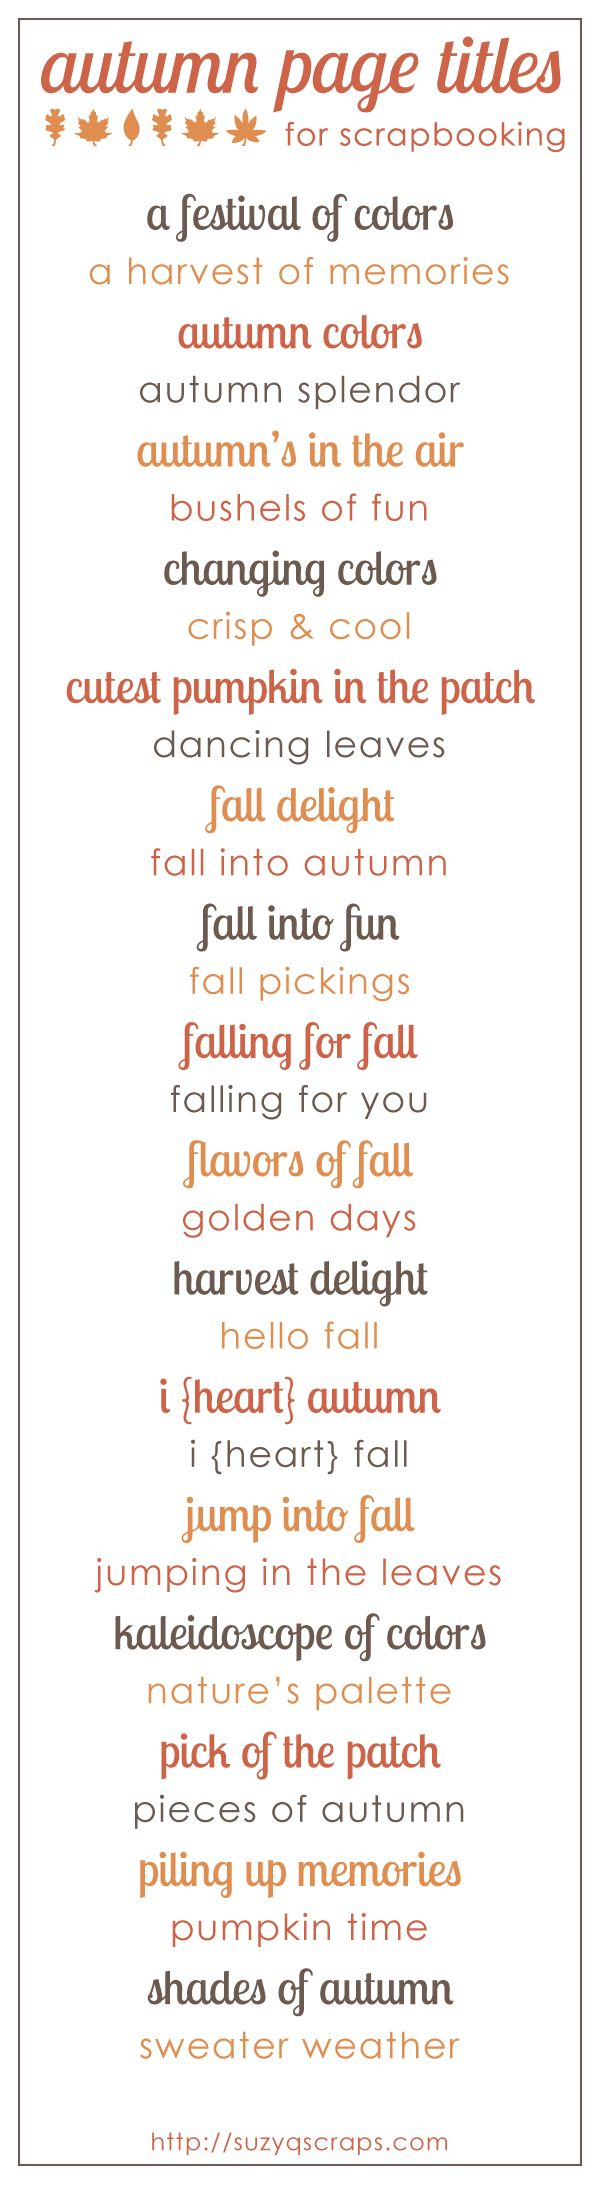 fall scrapbook ideas | fall & autumn scrapbook page titles